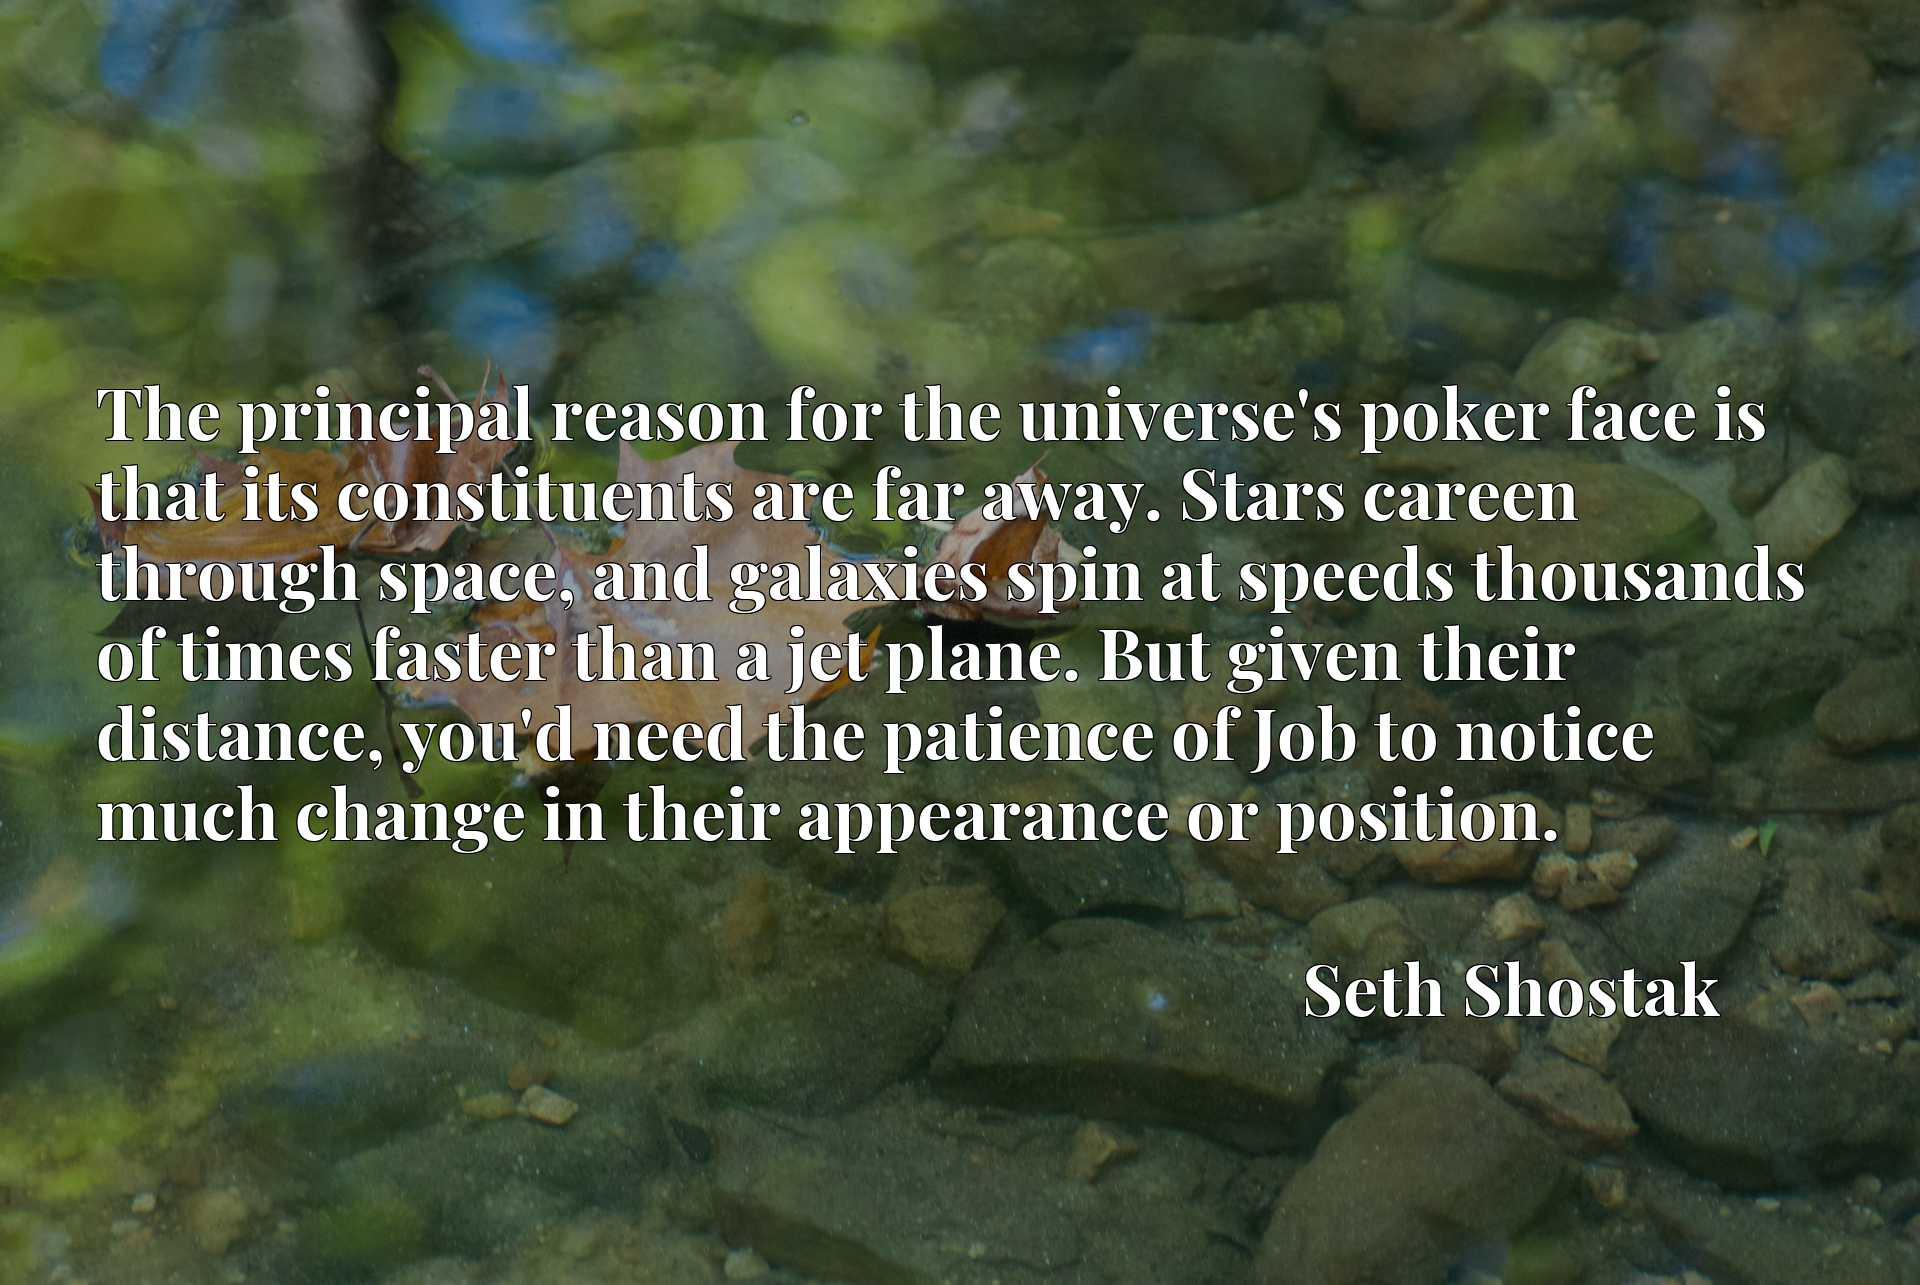 The principal reason for the universe's poker face is that its constituents are far away. Stars careen through space, and galaxies spin at speeds thousands of times faster than a jet plane. But given their distance, you'd need the patience of Job to notice much change in their appearance or position.